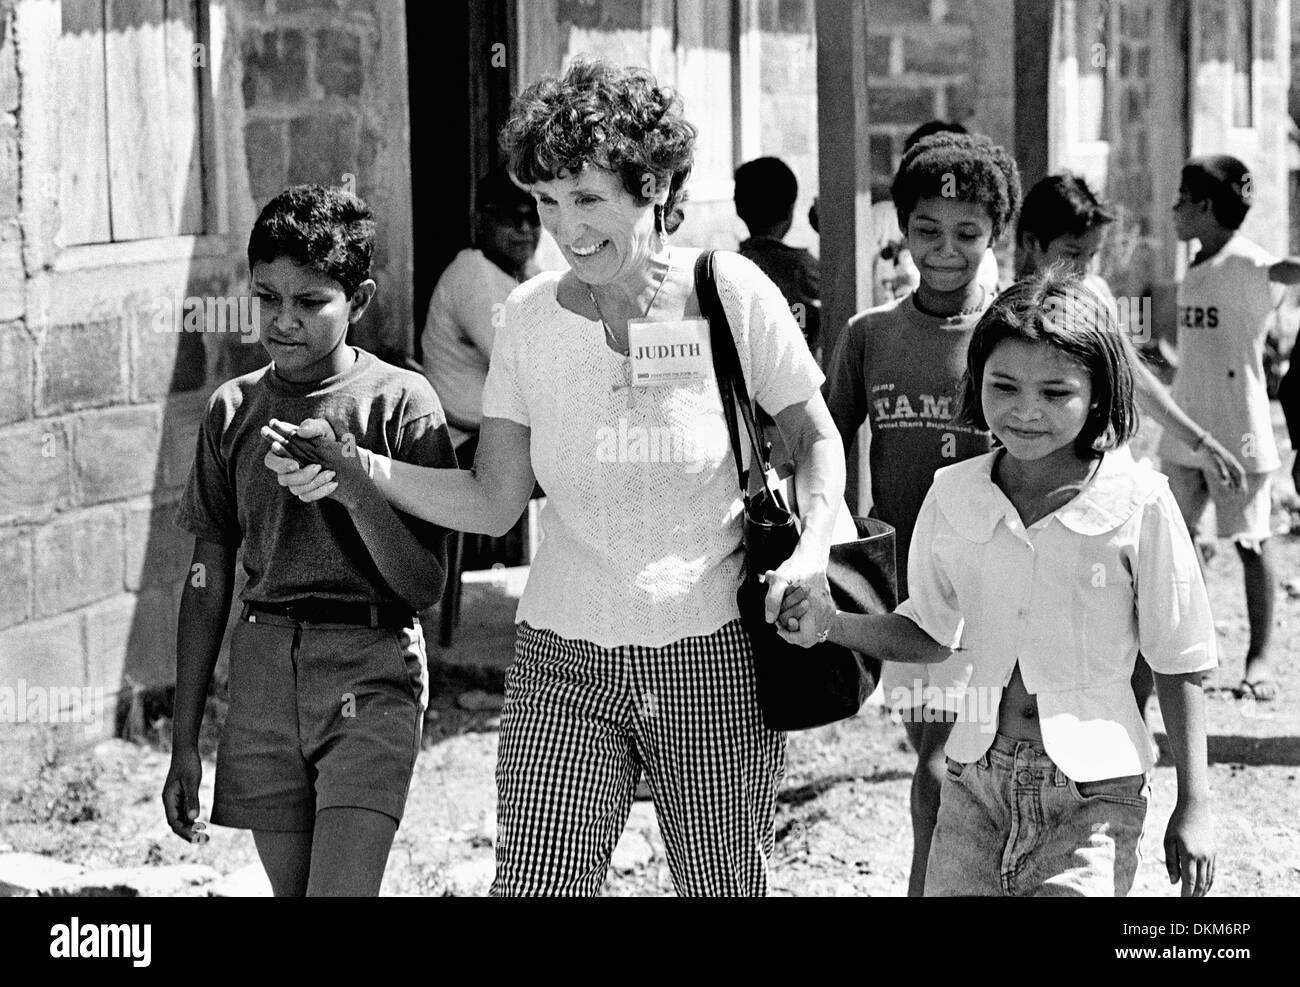 Nov. 19, 2002 - Chinandega, Nicaragua - Judith Sandman, of Wisconsin, walks hand in hand with children at the Villanueva housing project in Chinandega, Nicaragua, as they proudly give her a tour of their new homes. Amid scenes of desolation, the project, funded by Food For The Poor, Inc., gives pilgrims a hopeful glimpse of what can be accomplished to better the lives of the poor.  - Stock Image